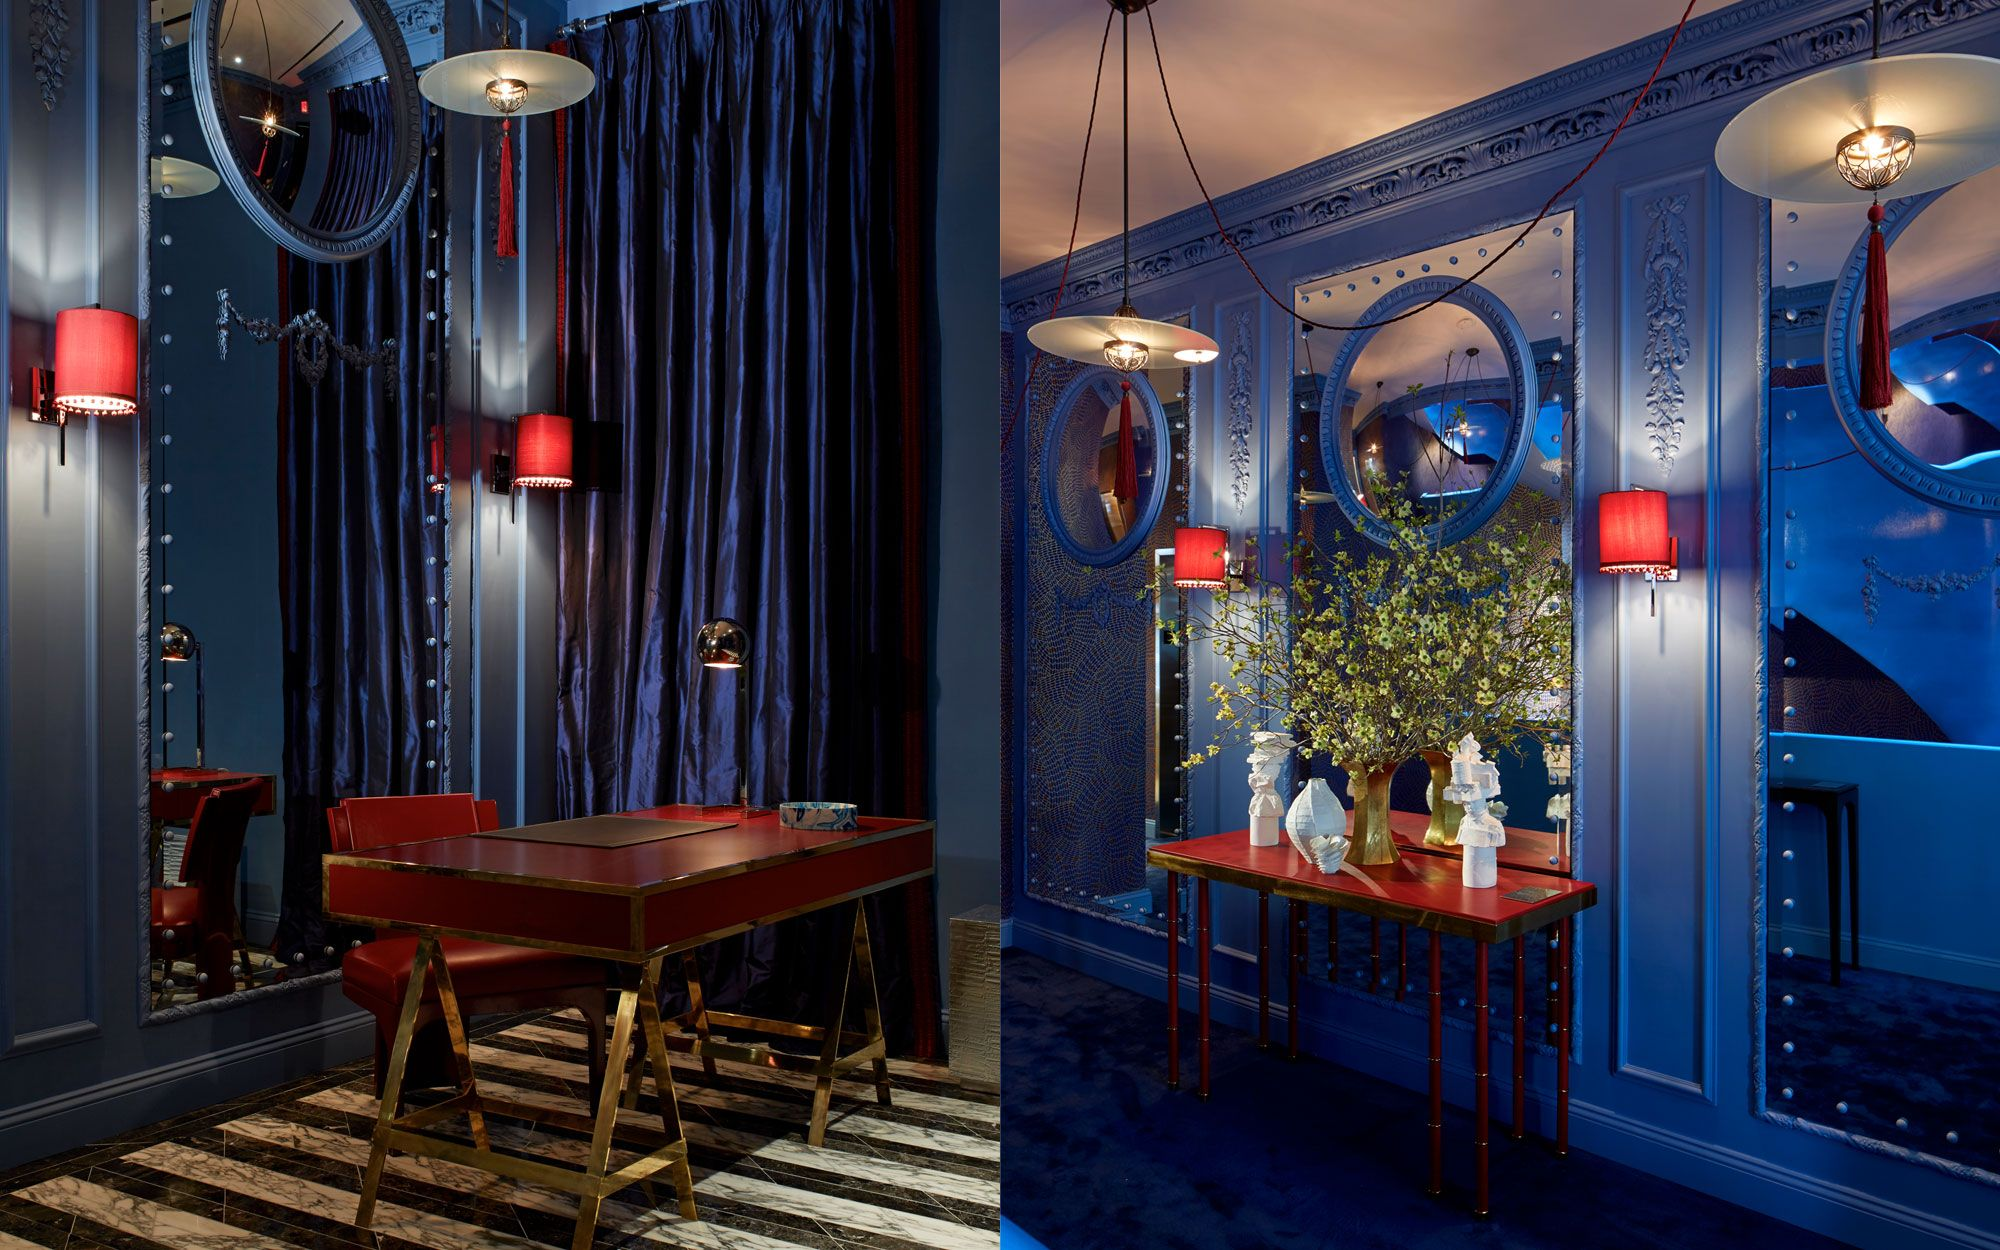 The Blue Bar At The Berkeleyel In London The Now Iconic Bar Combined Cl Ical De S By Sir Edwin Lutyens With Elements Of Contemporary Design